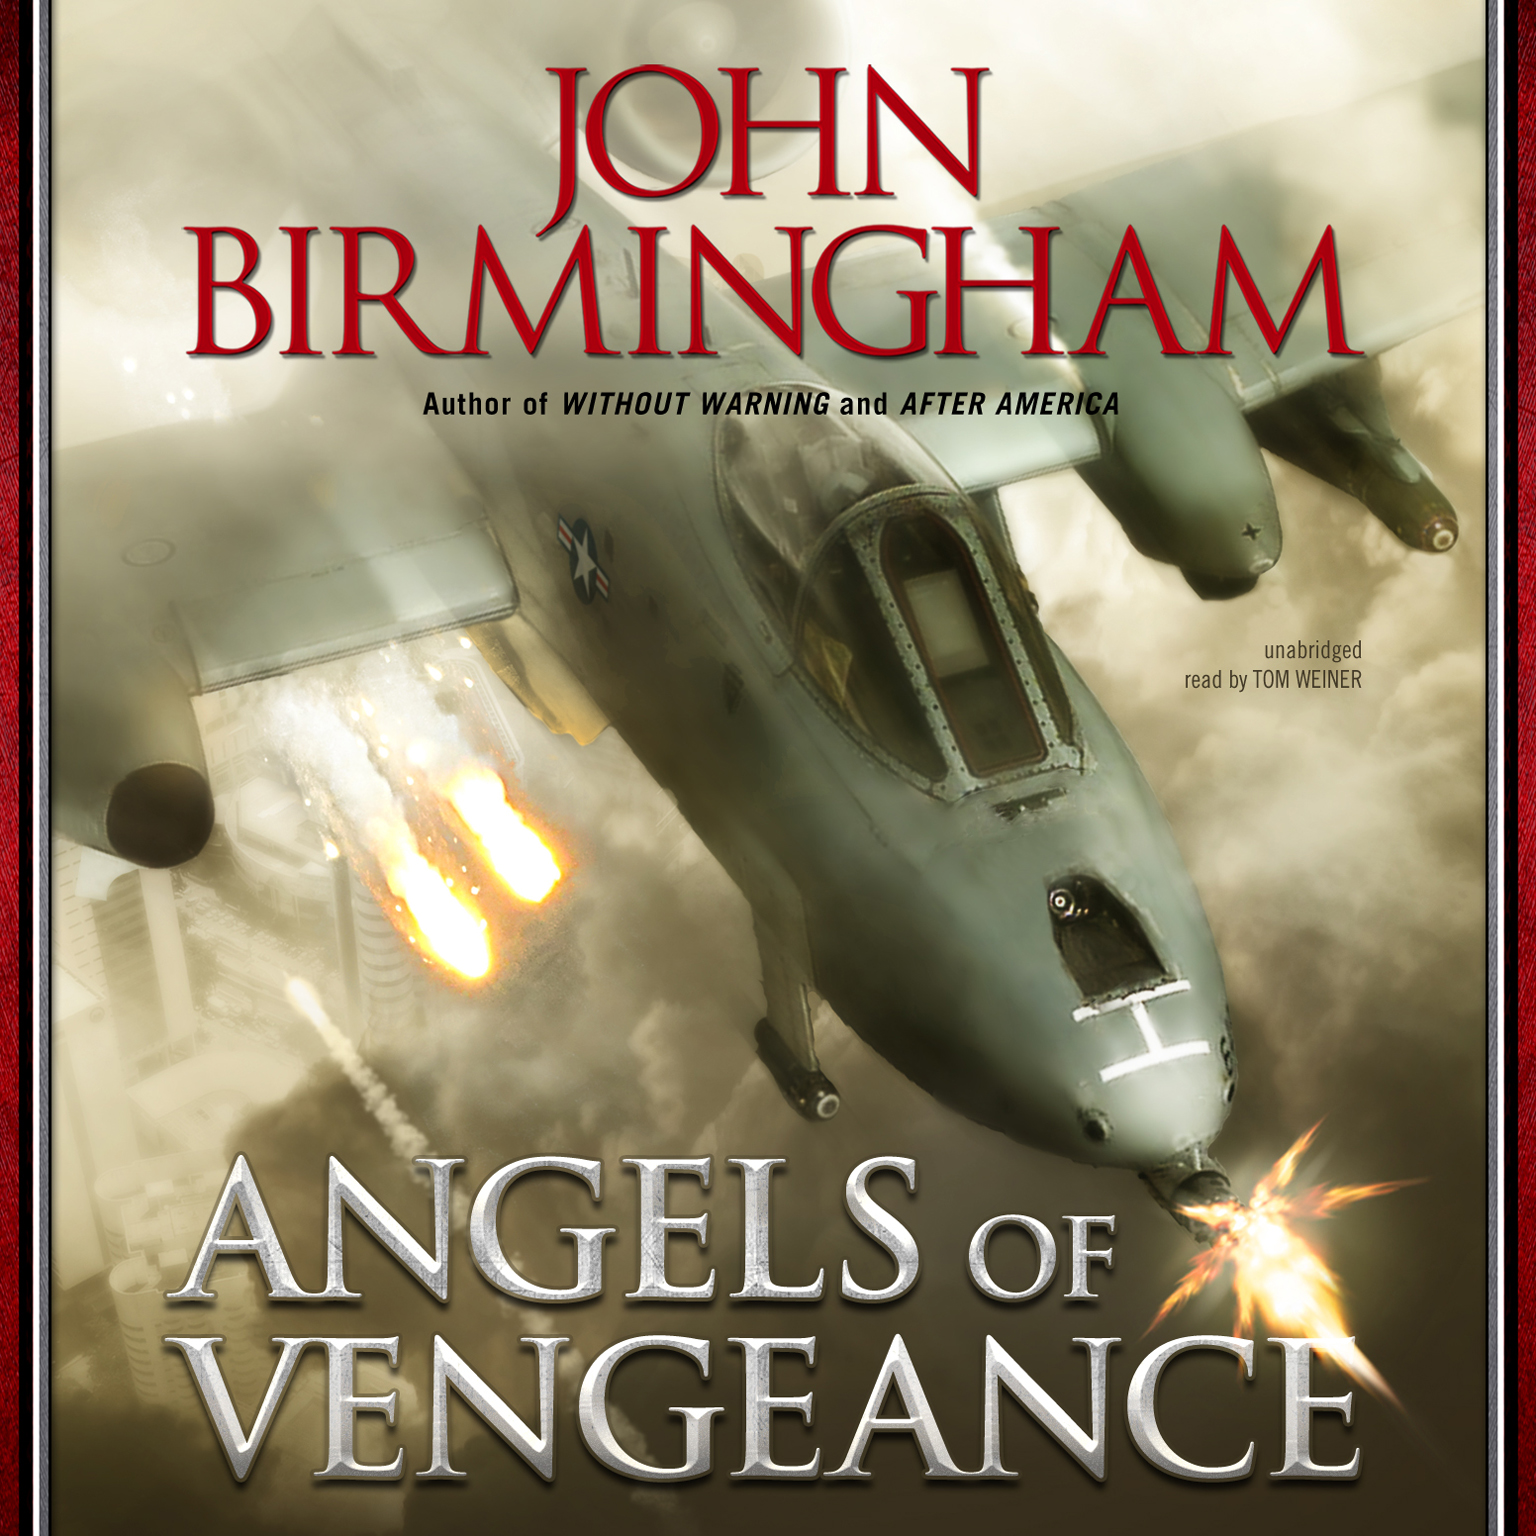 Printable Angels of Vengeance Audiobook Cover Art